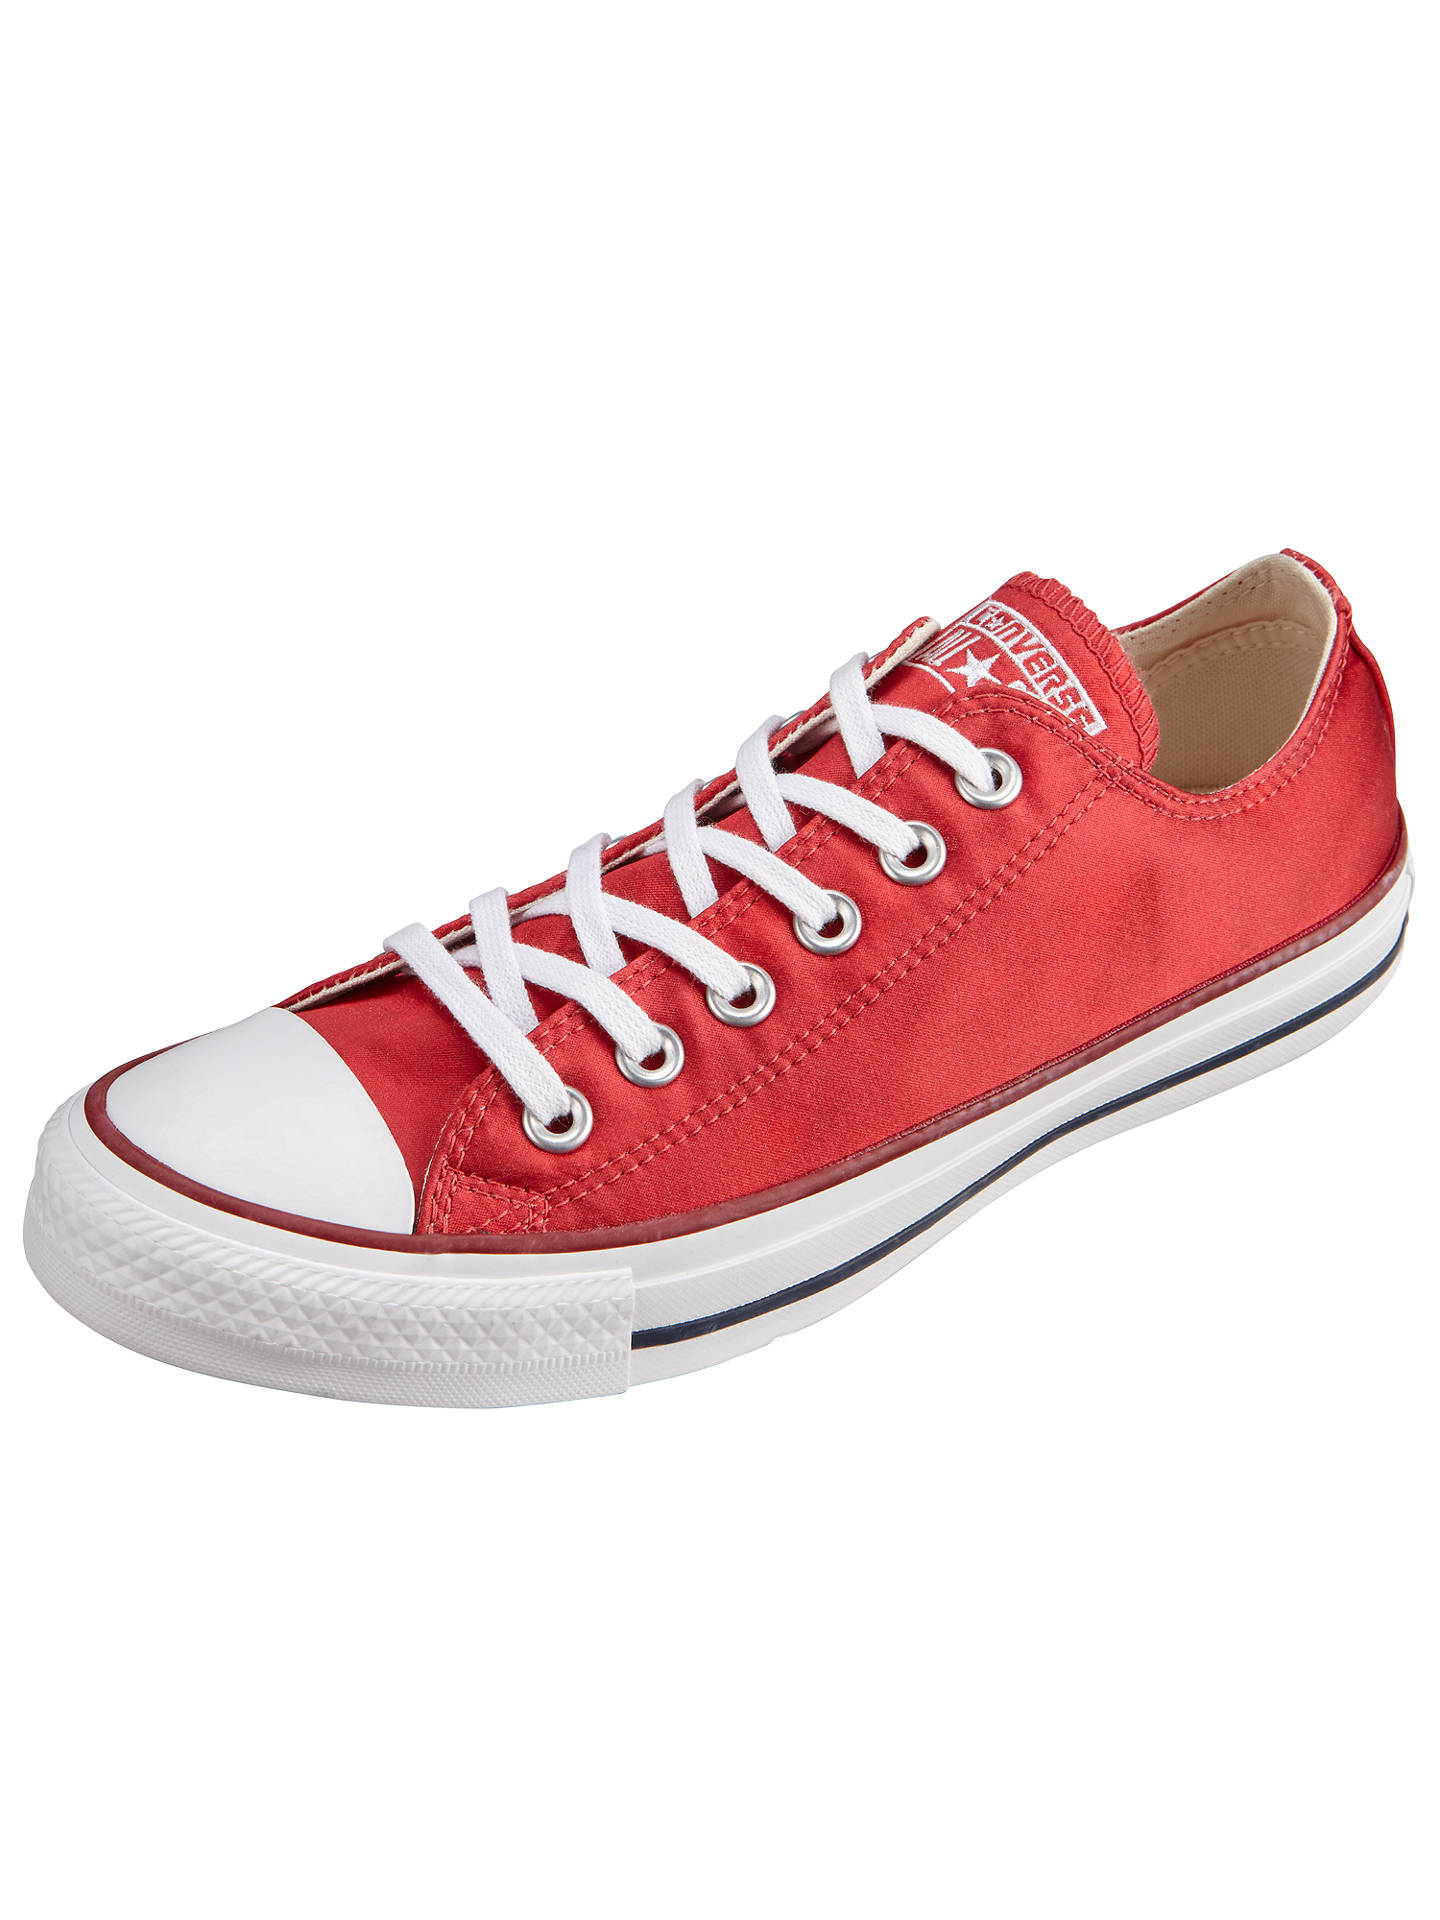 b3af58abb501 Buy Converse Chuck Taylor All Star Ox Sheenwash Trainers